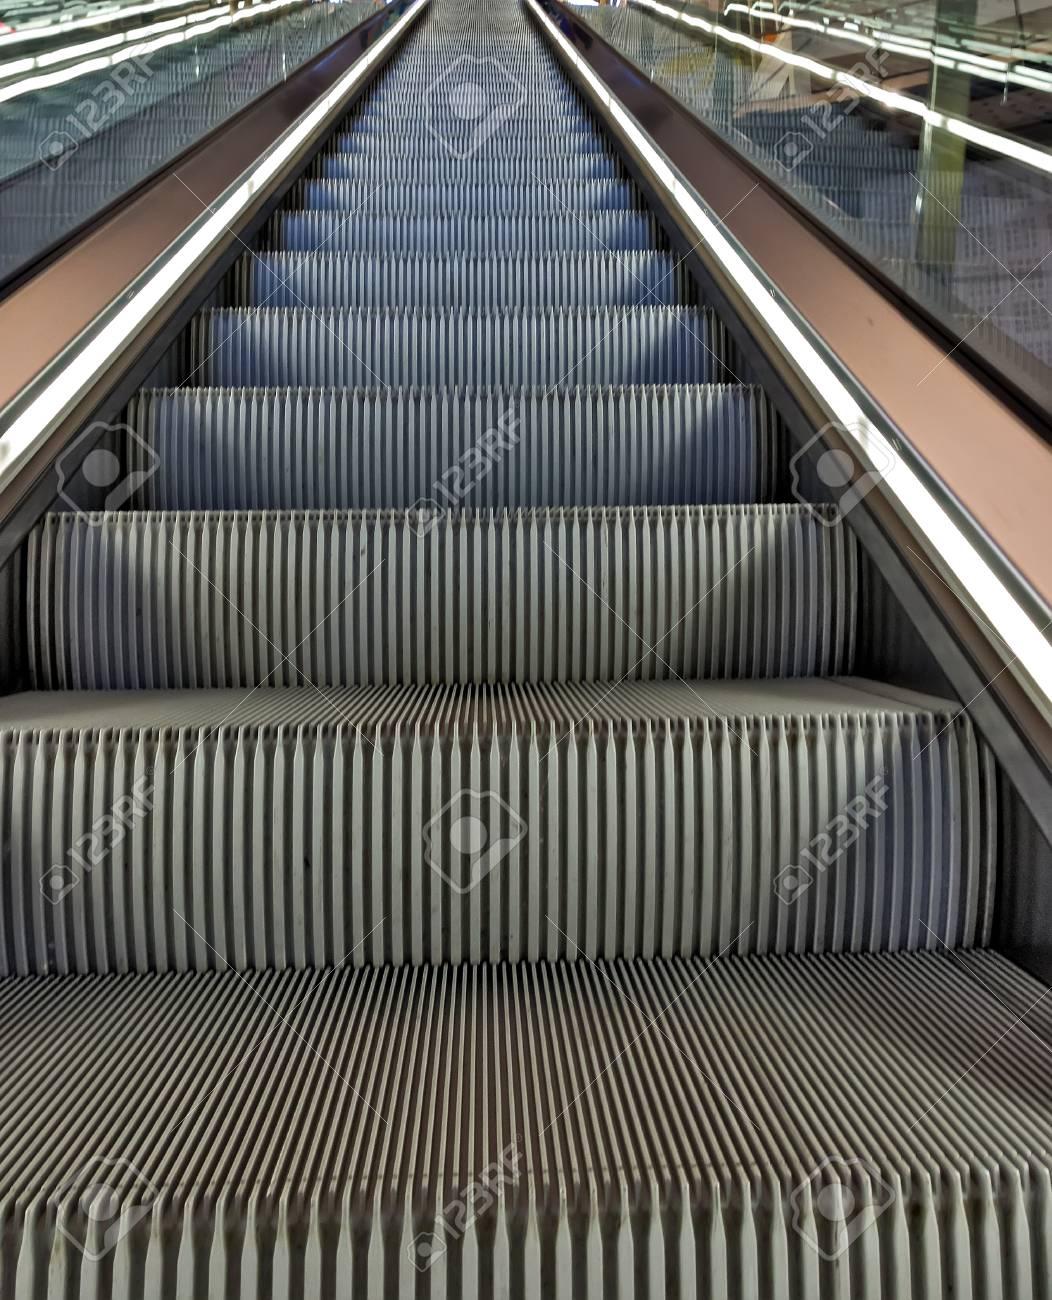 Empty Escalator Is A Moving Staircase Transportation Stock Photo   91886963